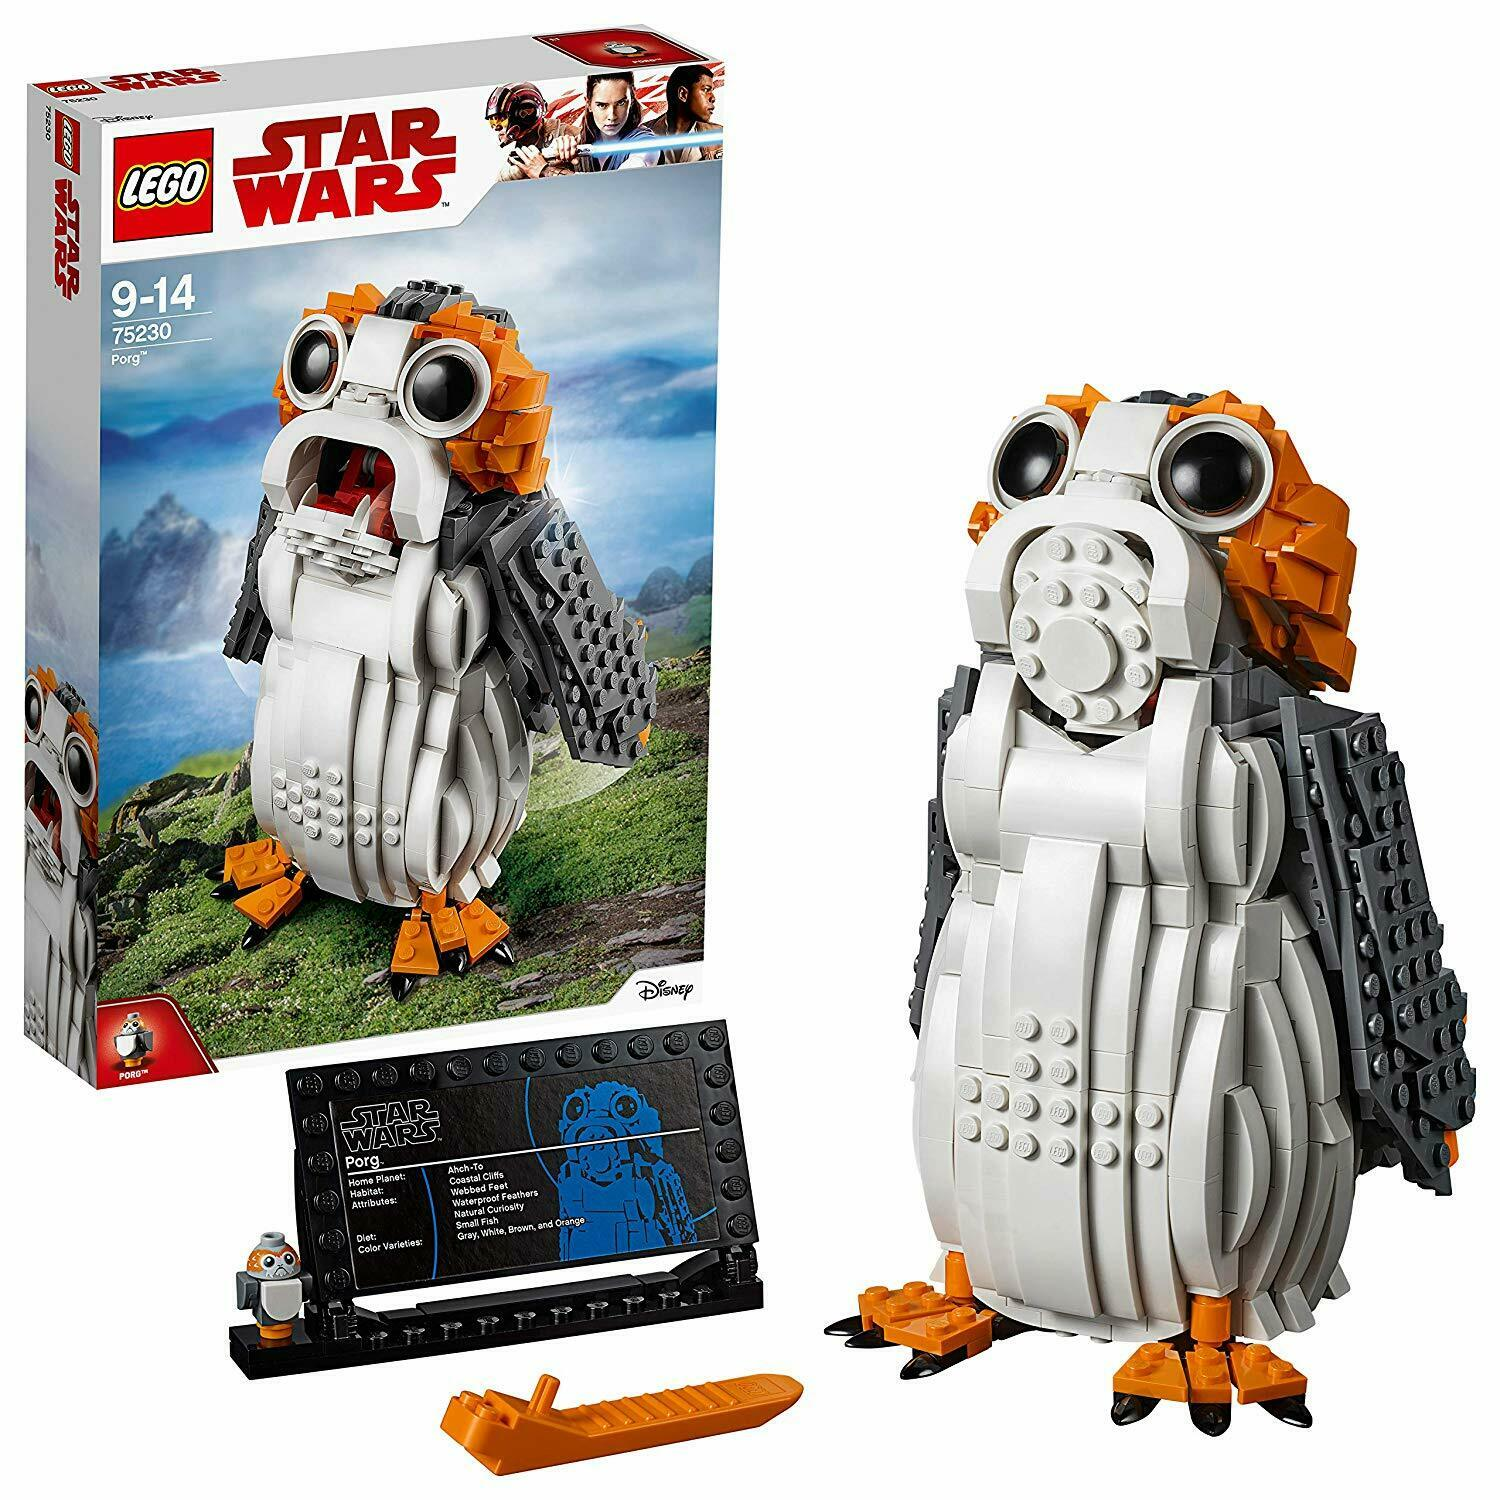 LEGO Star Wars Porg Figure Brick Building Toy Collectible Model Kids Playset New